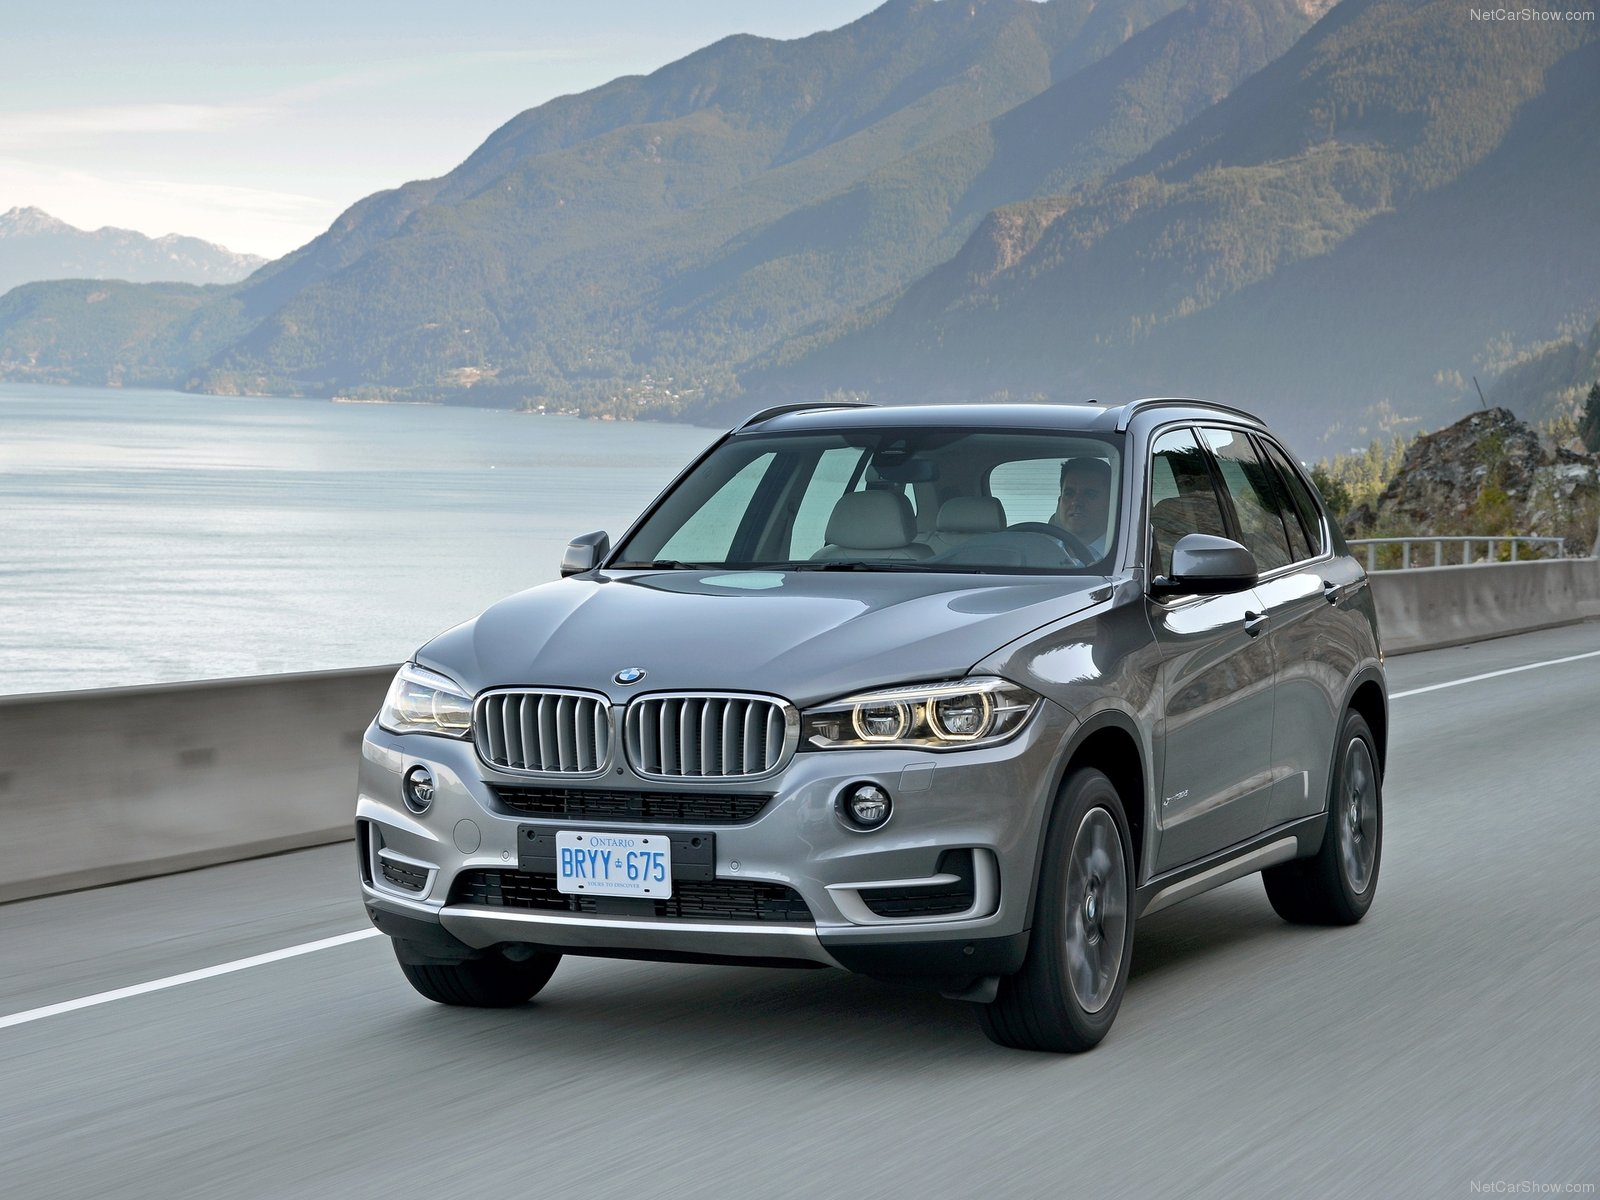 bmw recalls 2014 and 2015 x5 suvs for airbag problems autoevolution. Black Bedroom Furniture Sets. Home Design Ideas